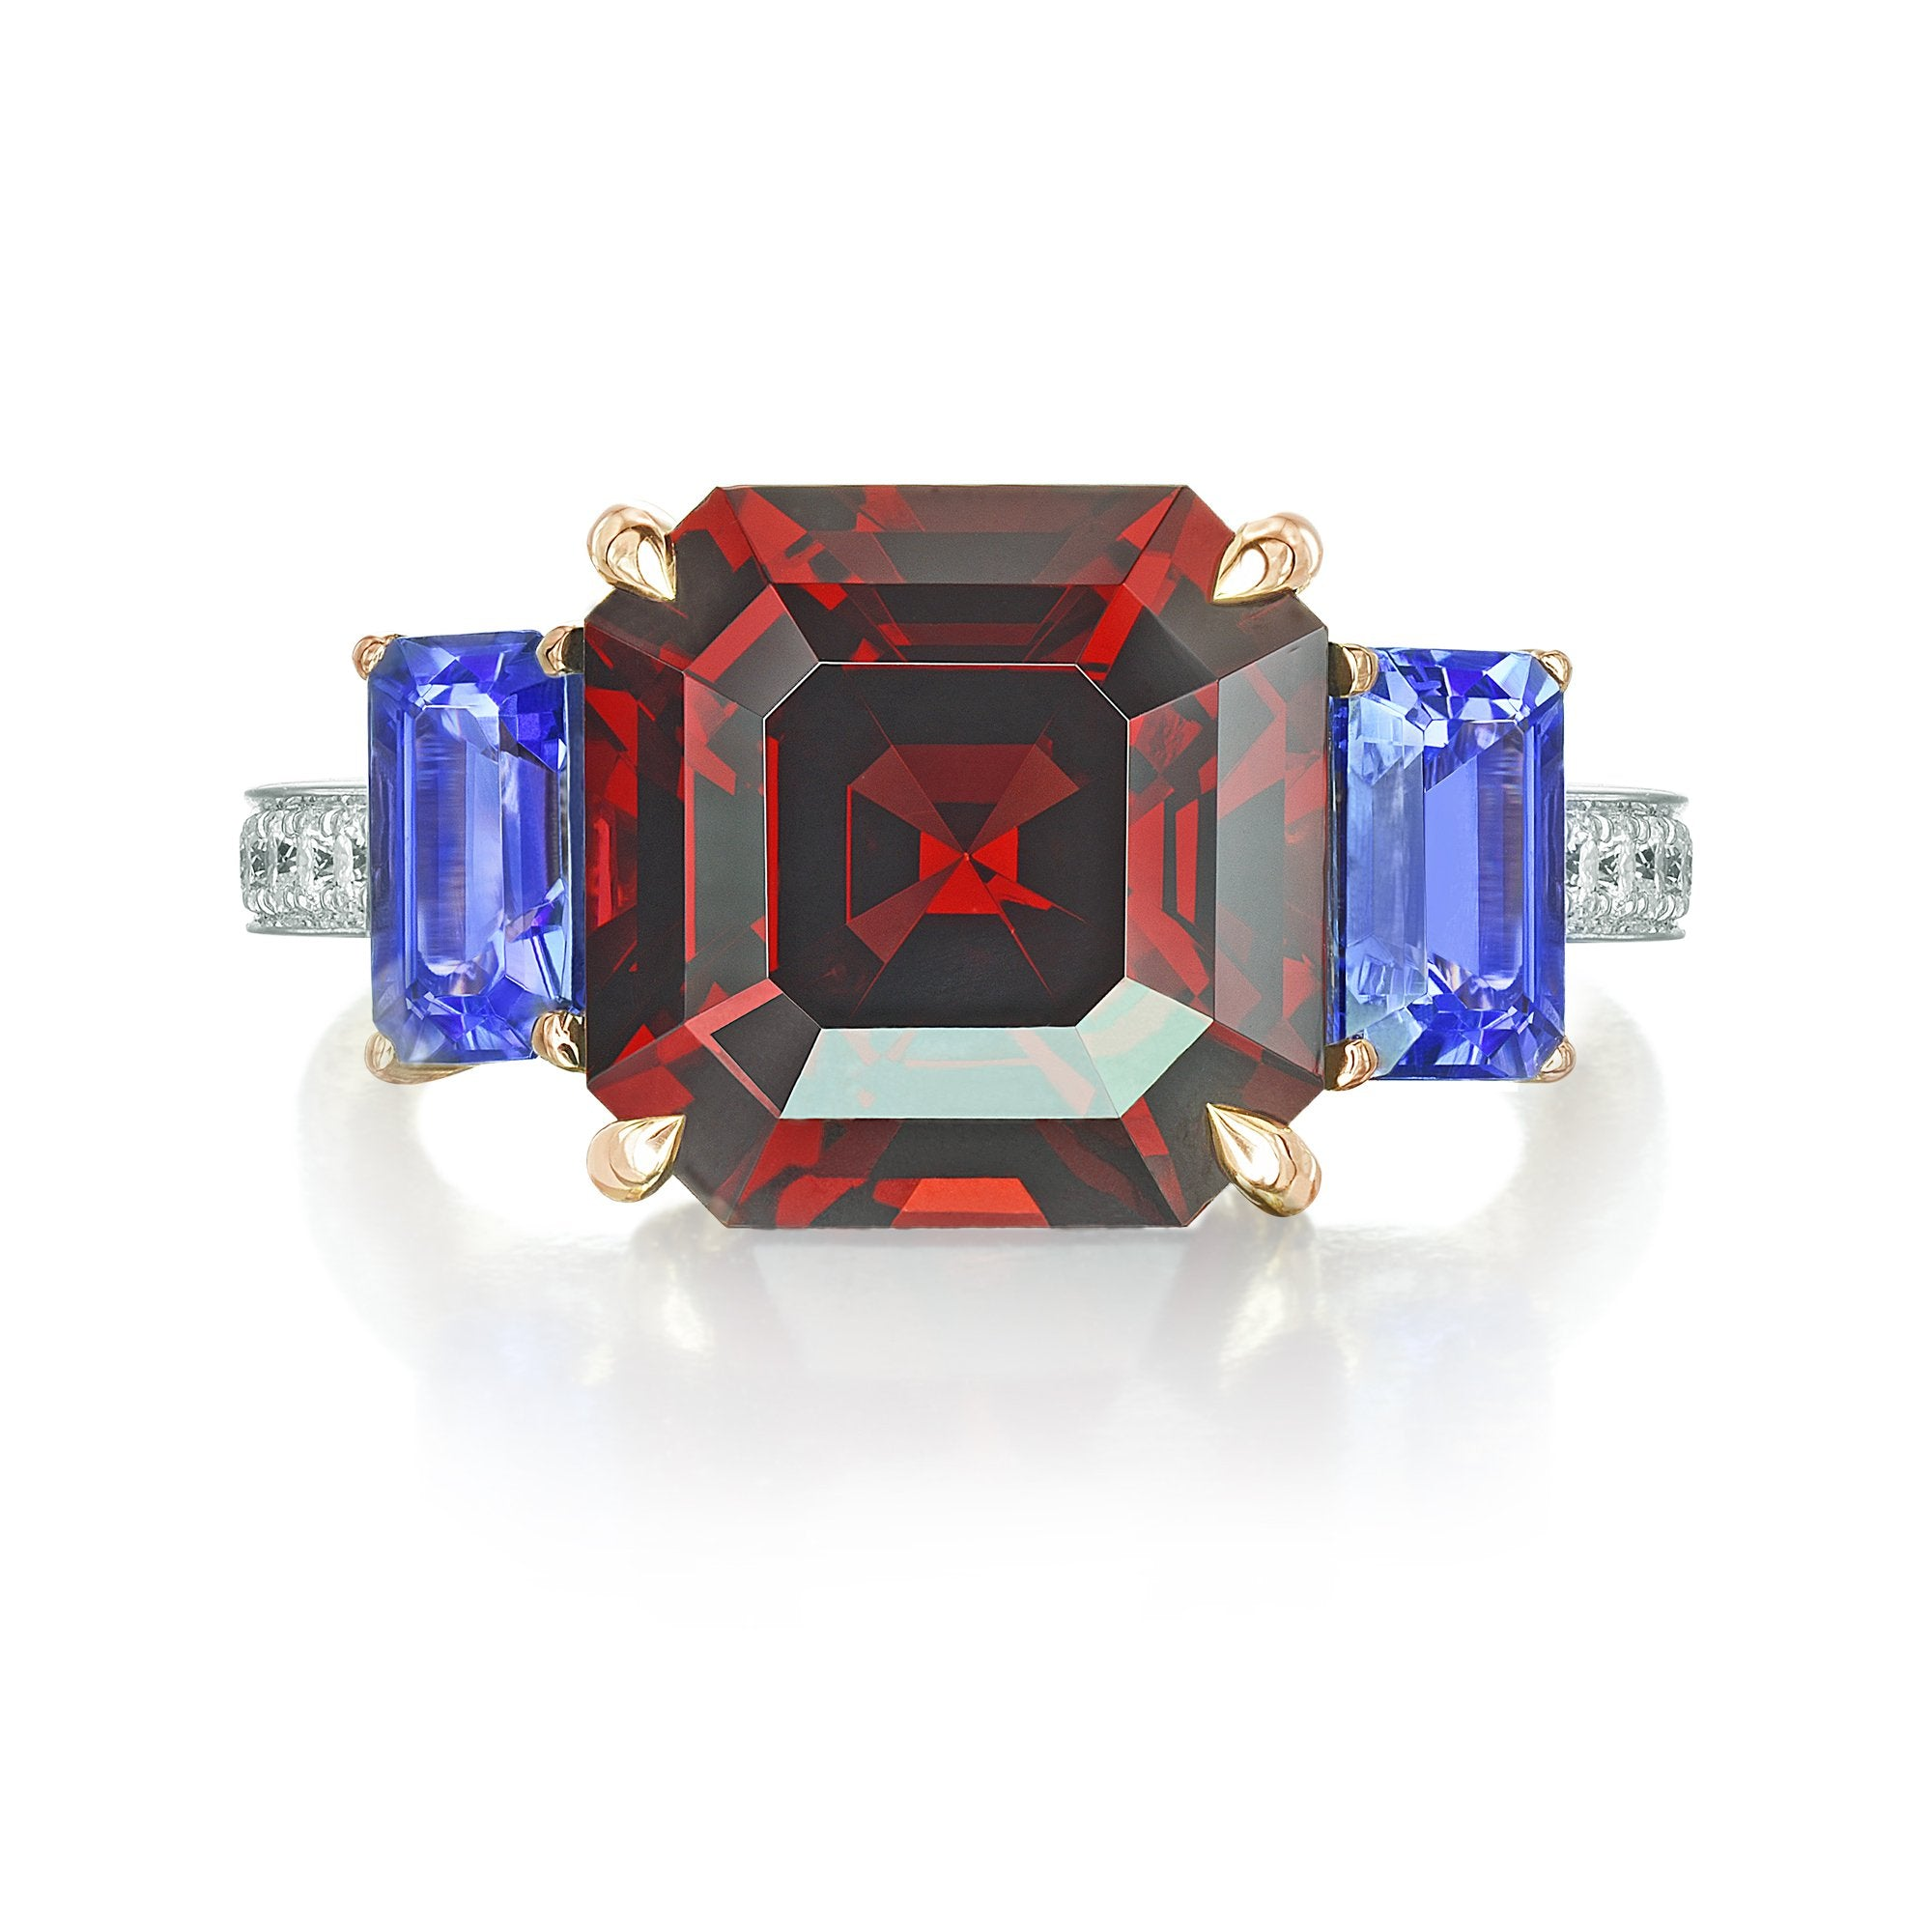 Rhodolite Garnet and Tanzanite Ring - Paolo Costagli